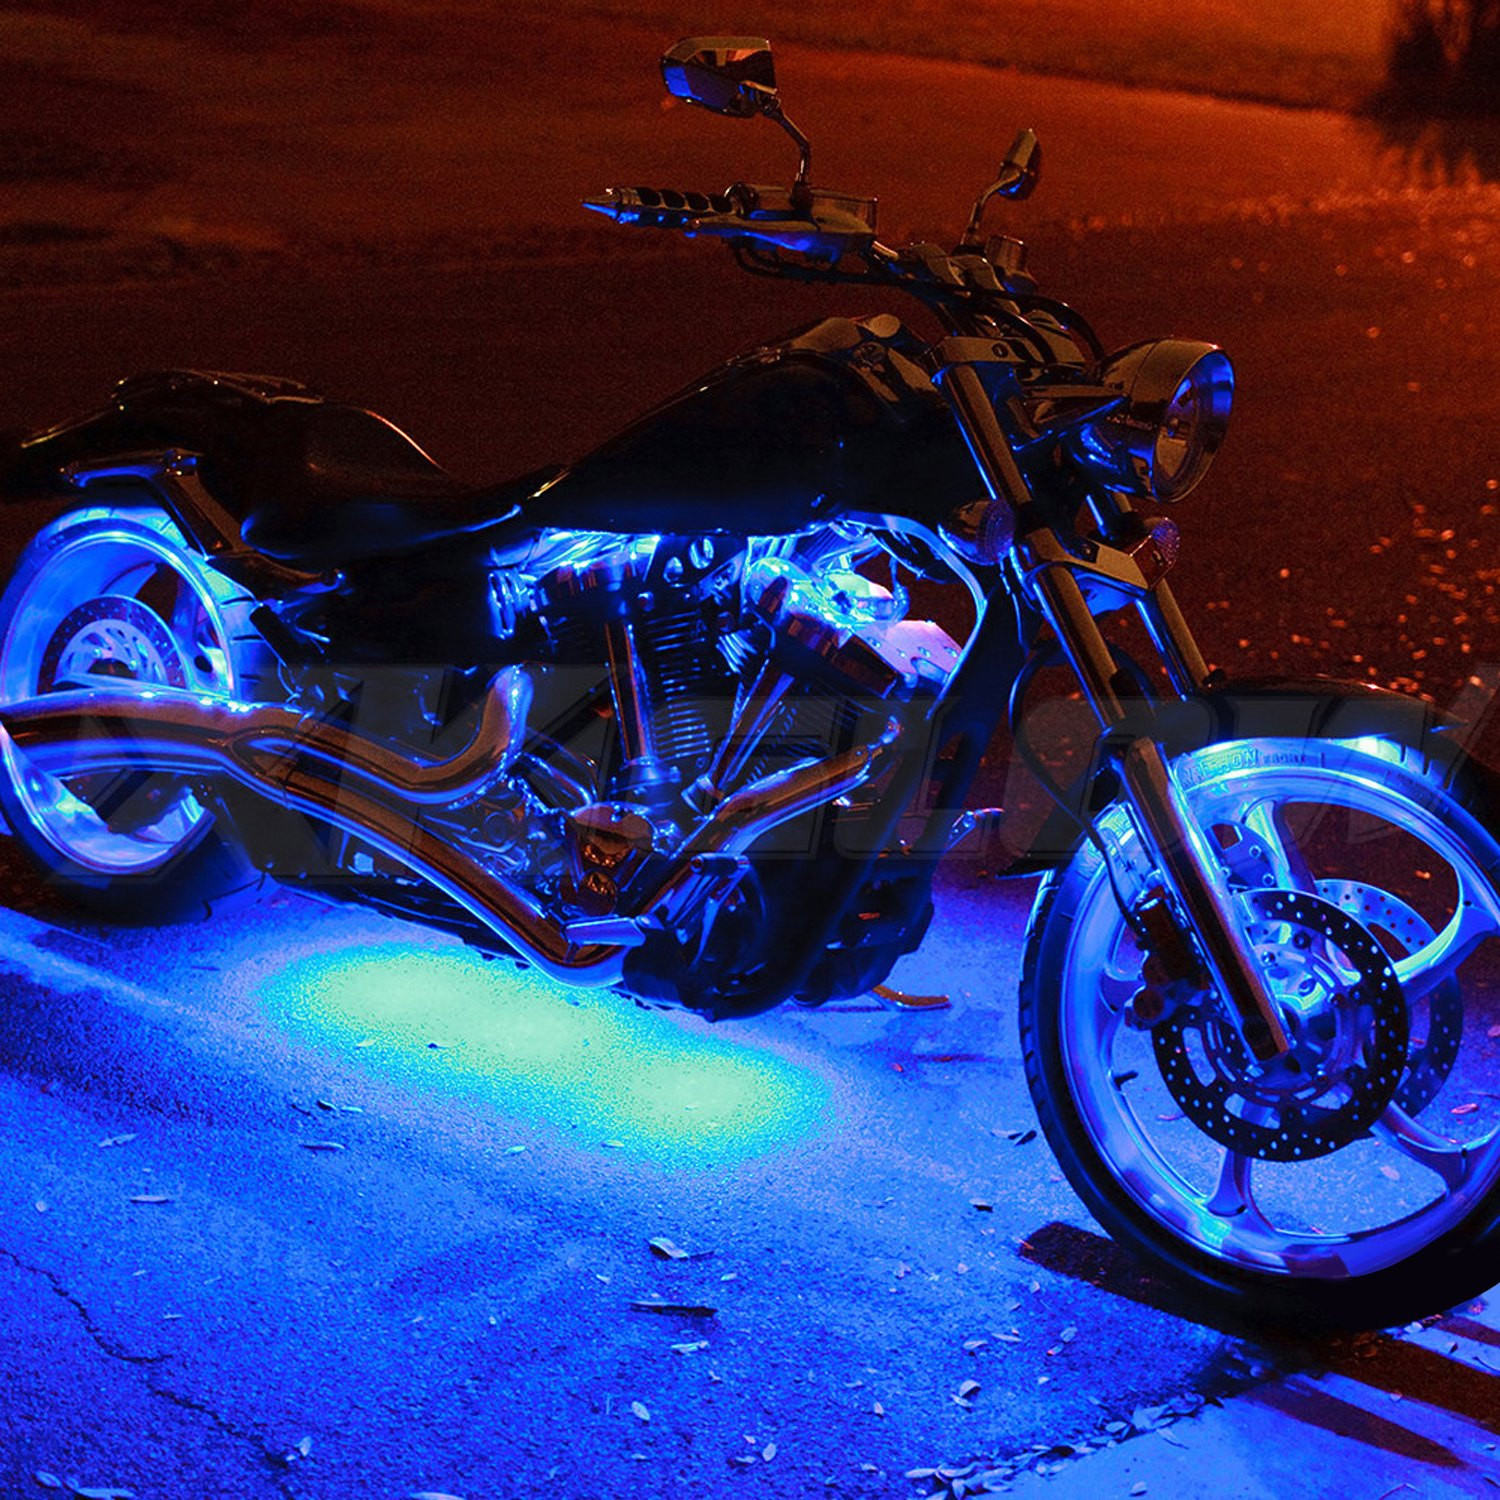 Blue Led Motorcycle Lights